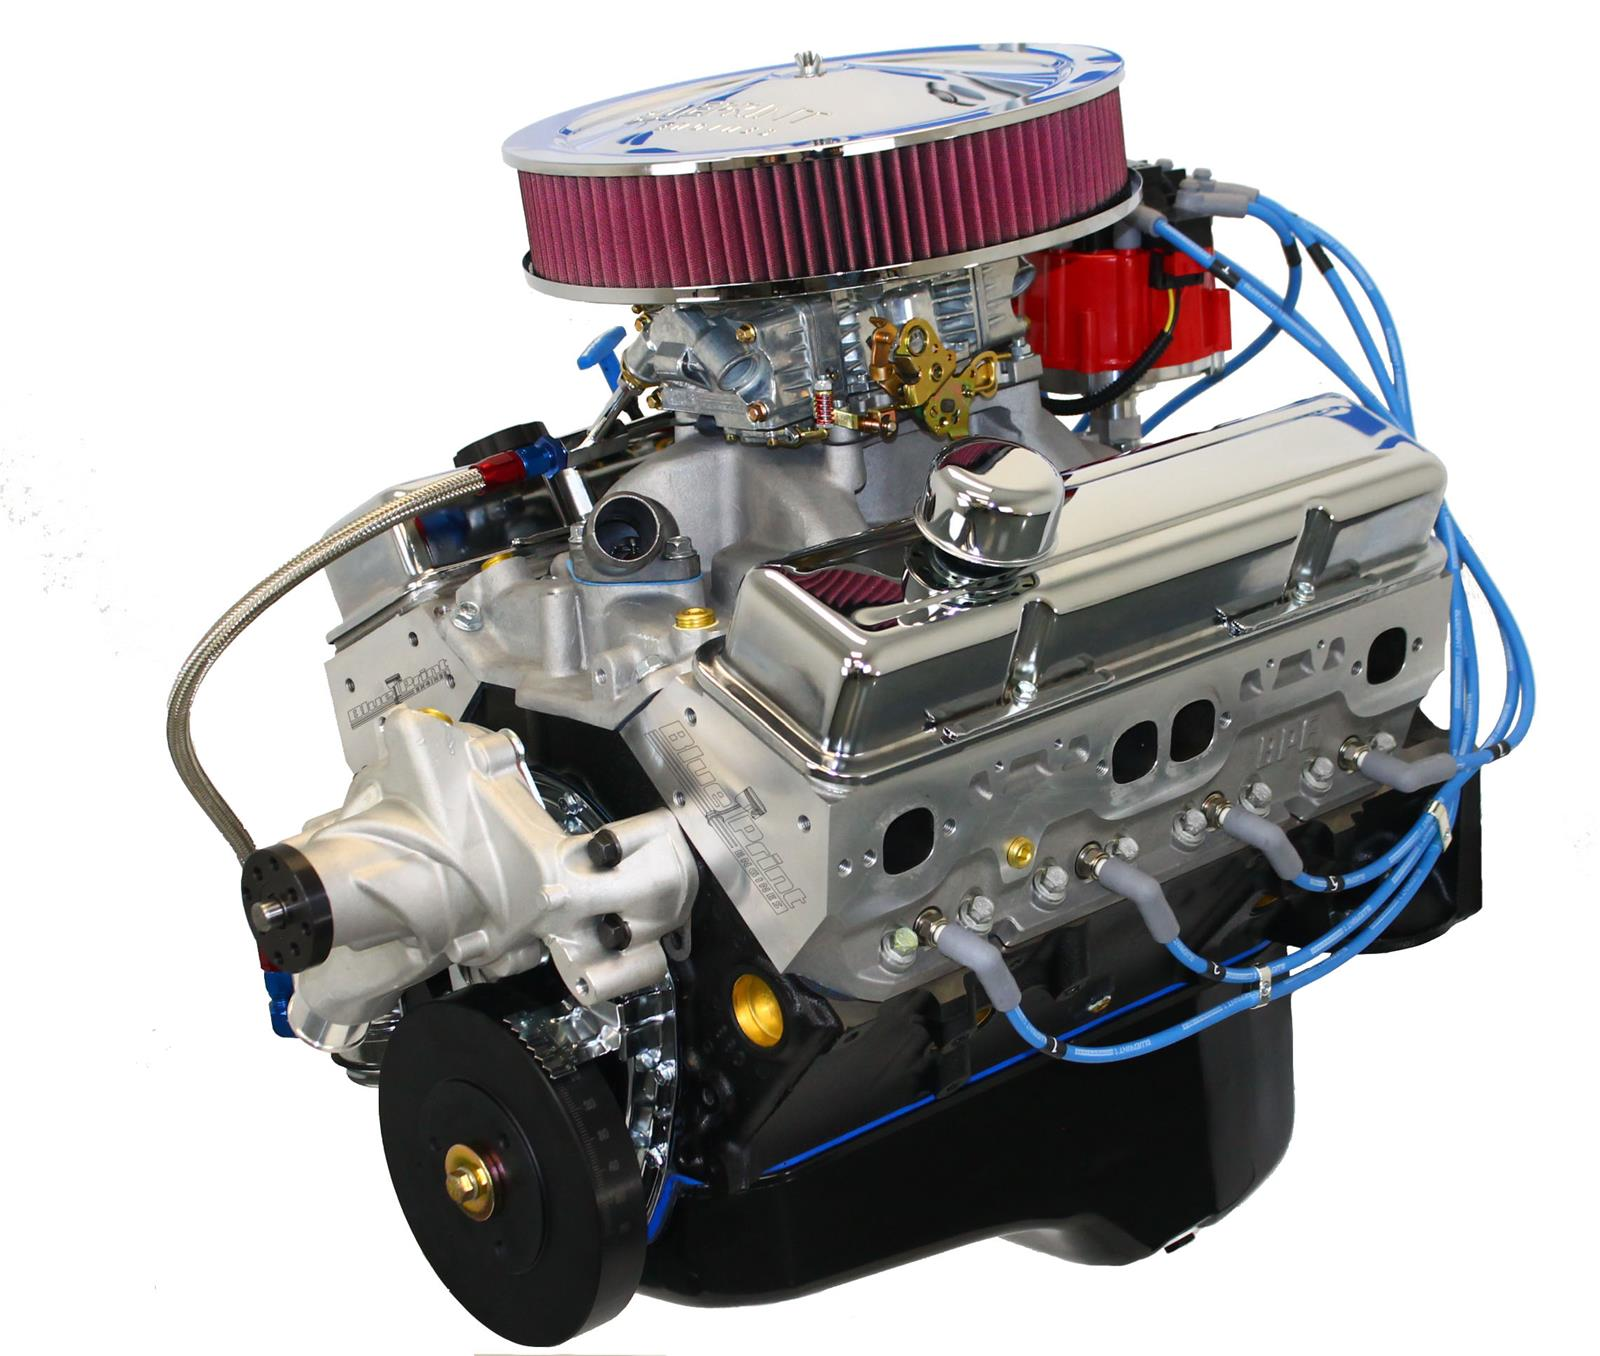 hight resolution of blueprint engines gm 383 c i d 430 hp stroker base dressed long blocks w aluminum heads bp38313ctc1d free shipping on orders over 99 at summit racing